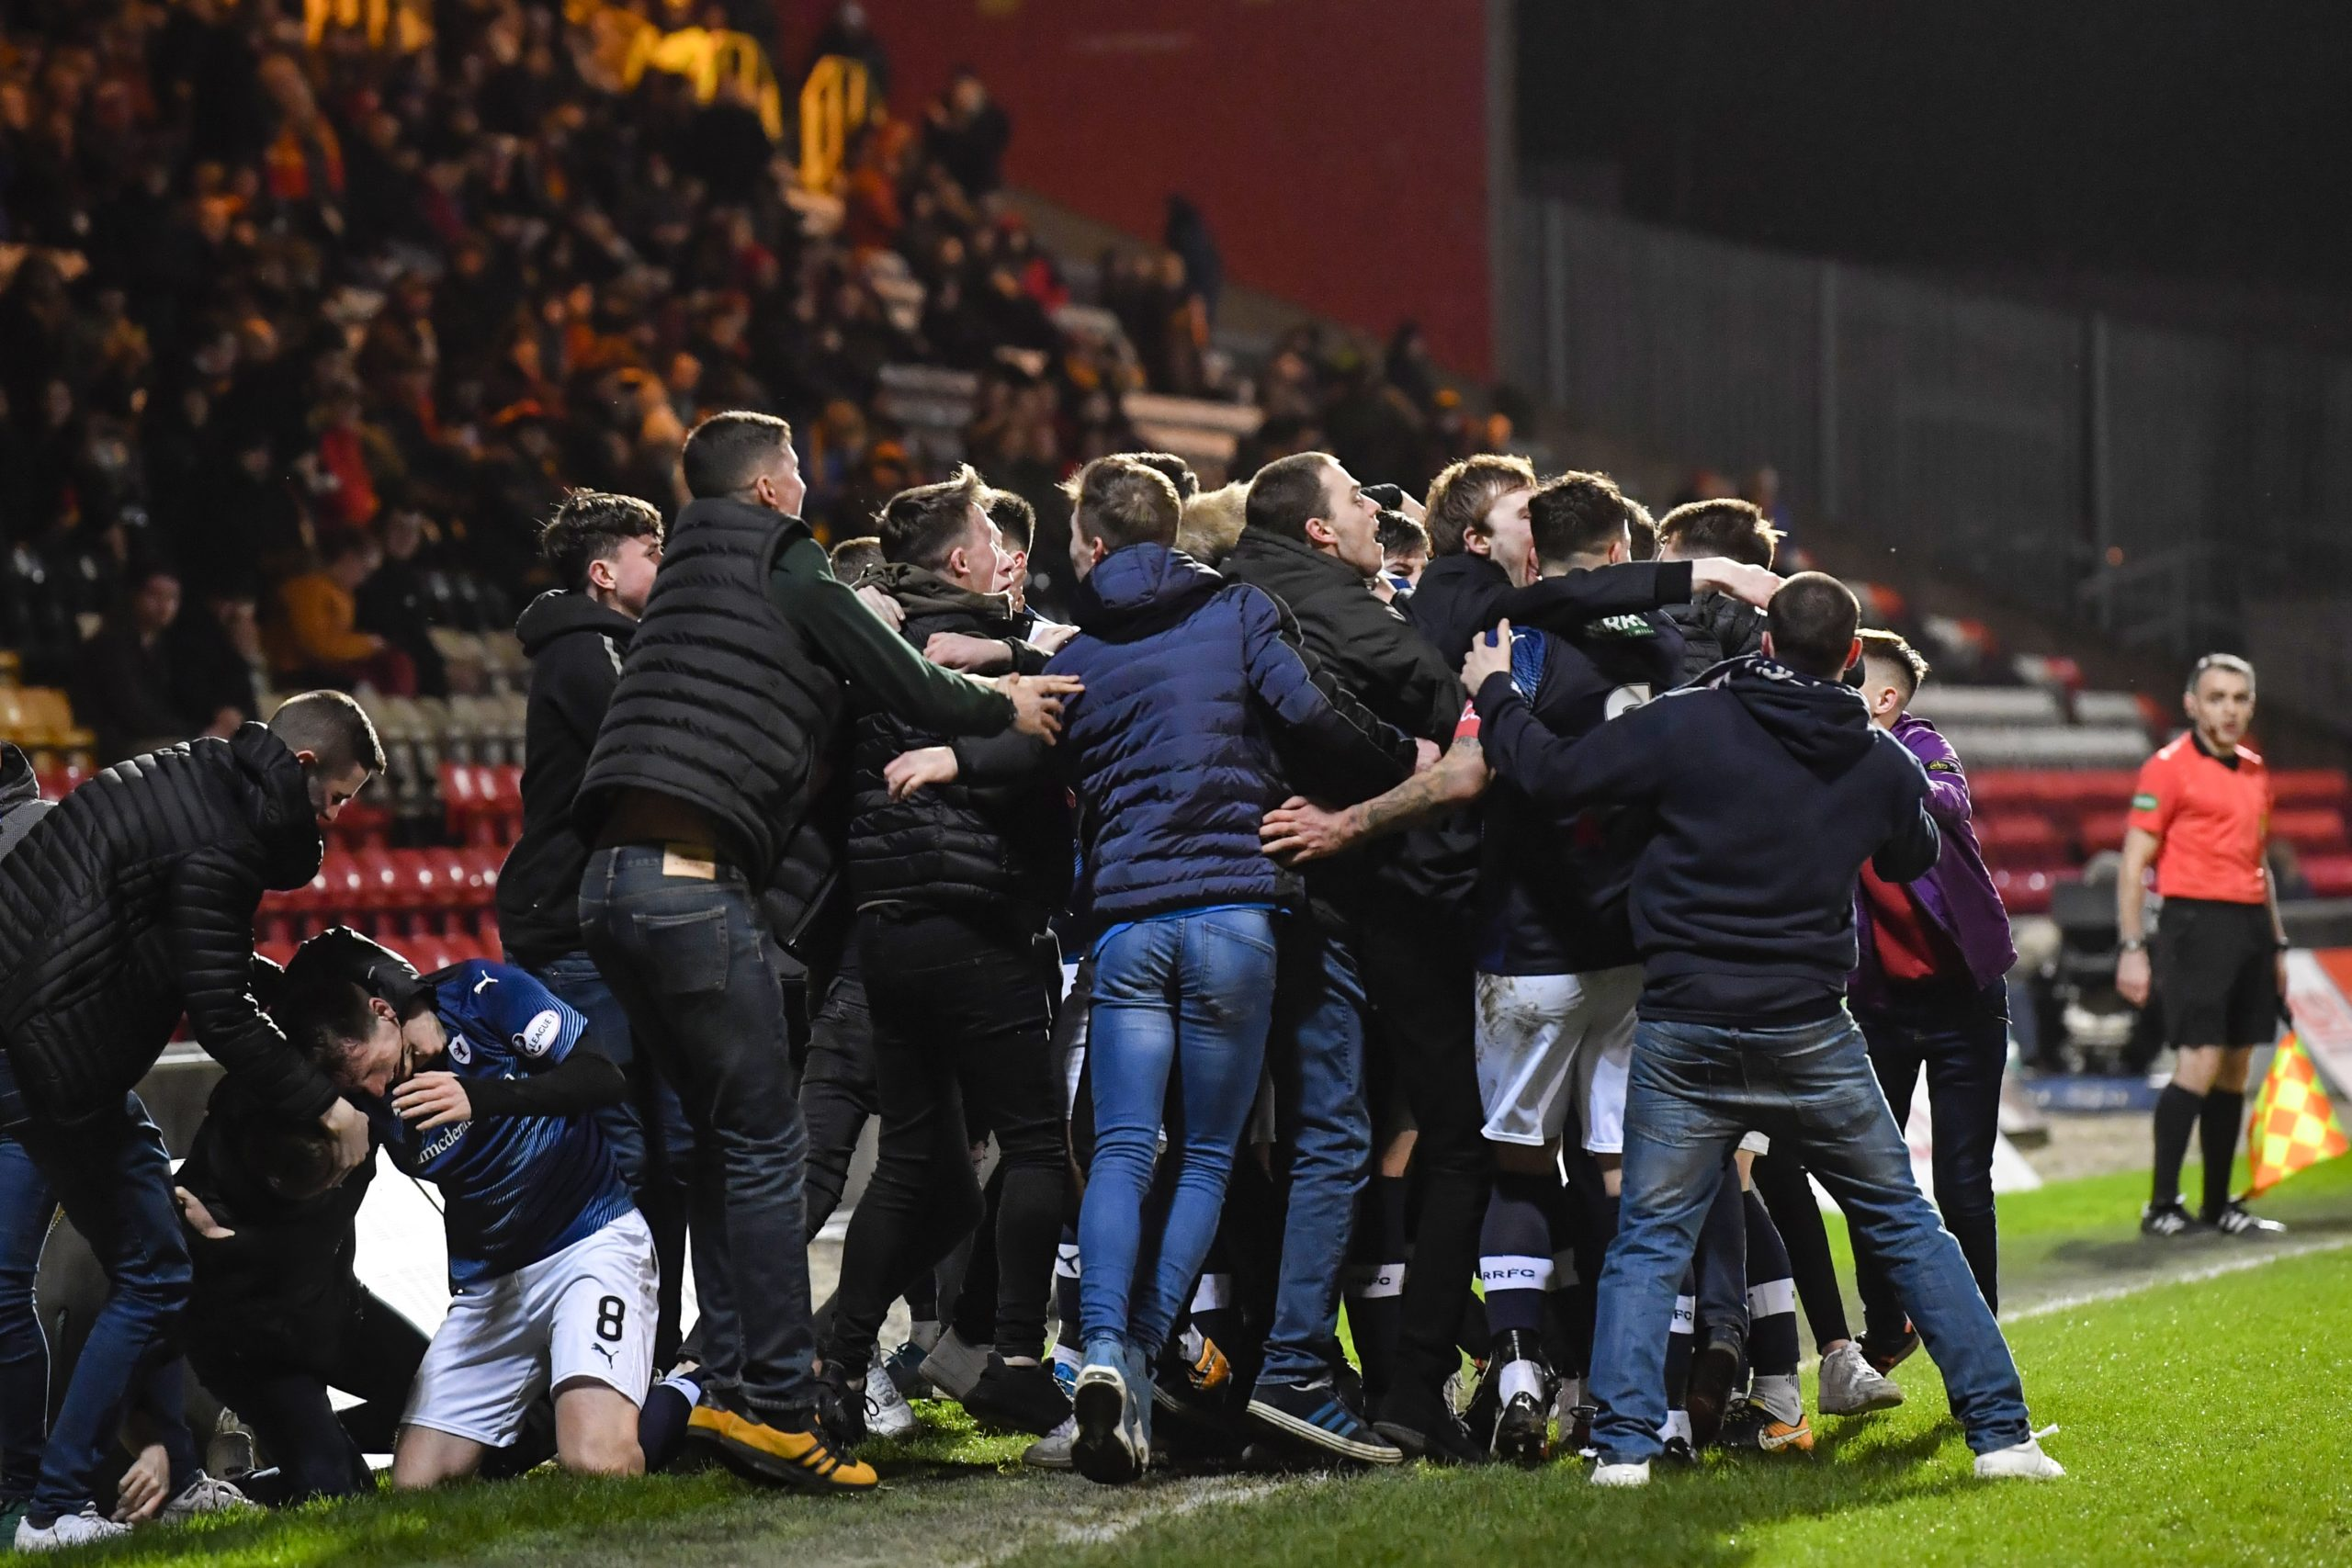 The Raith Rovers fans invade the pitch after Regan Hendry's goal during the 2-1 semi-final win at Firhill.